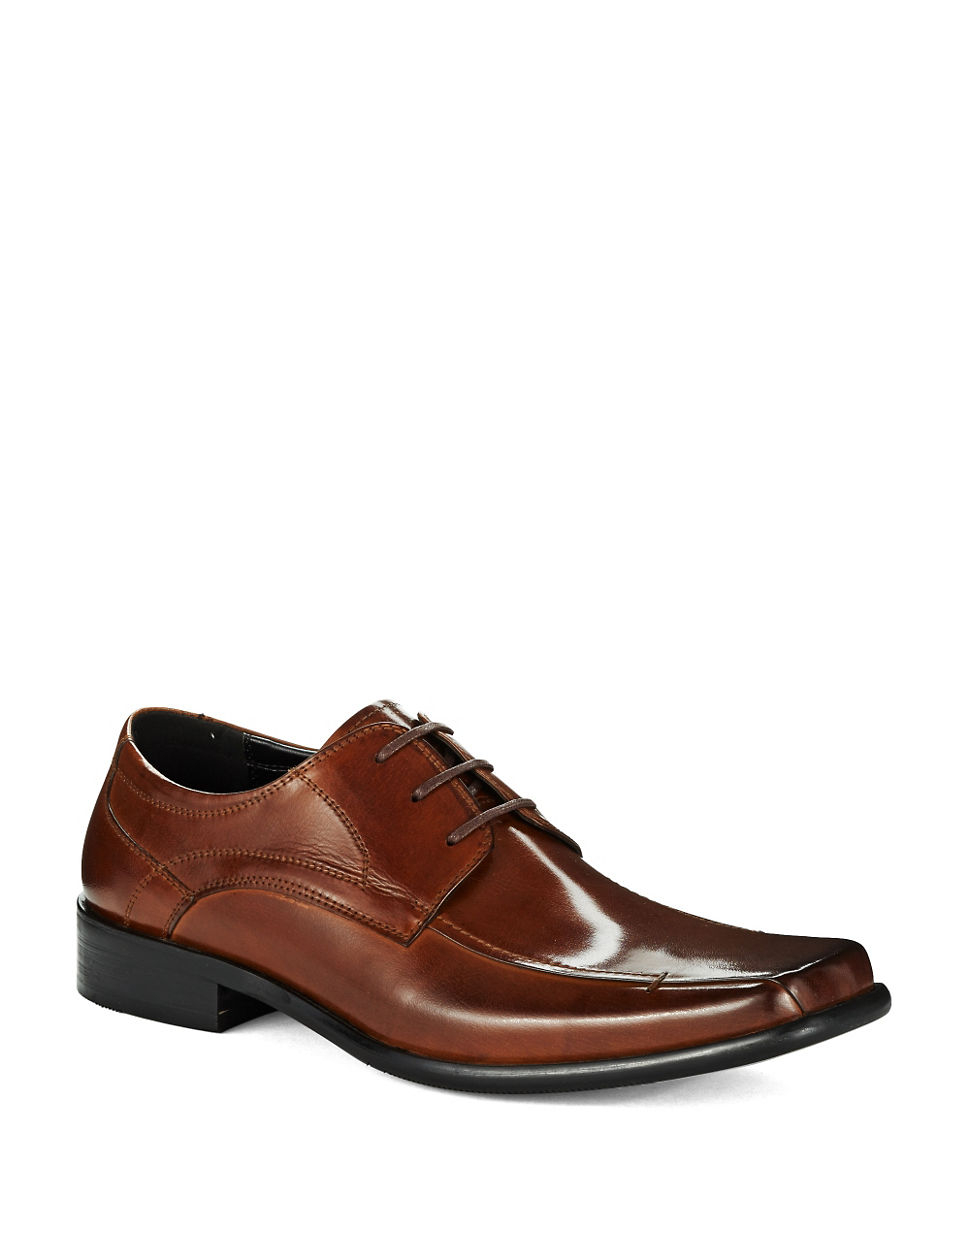 Lord And Taylor Dress Shoes